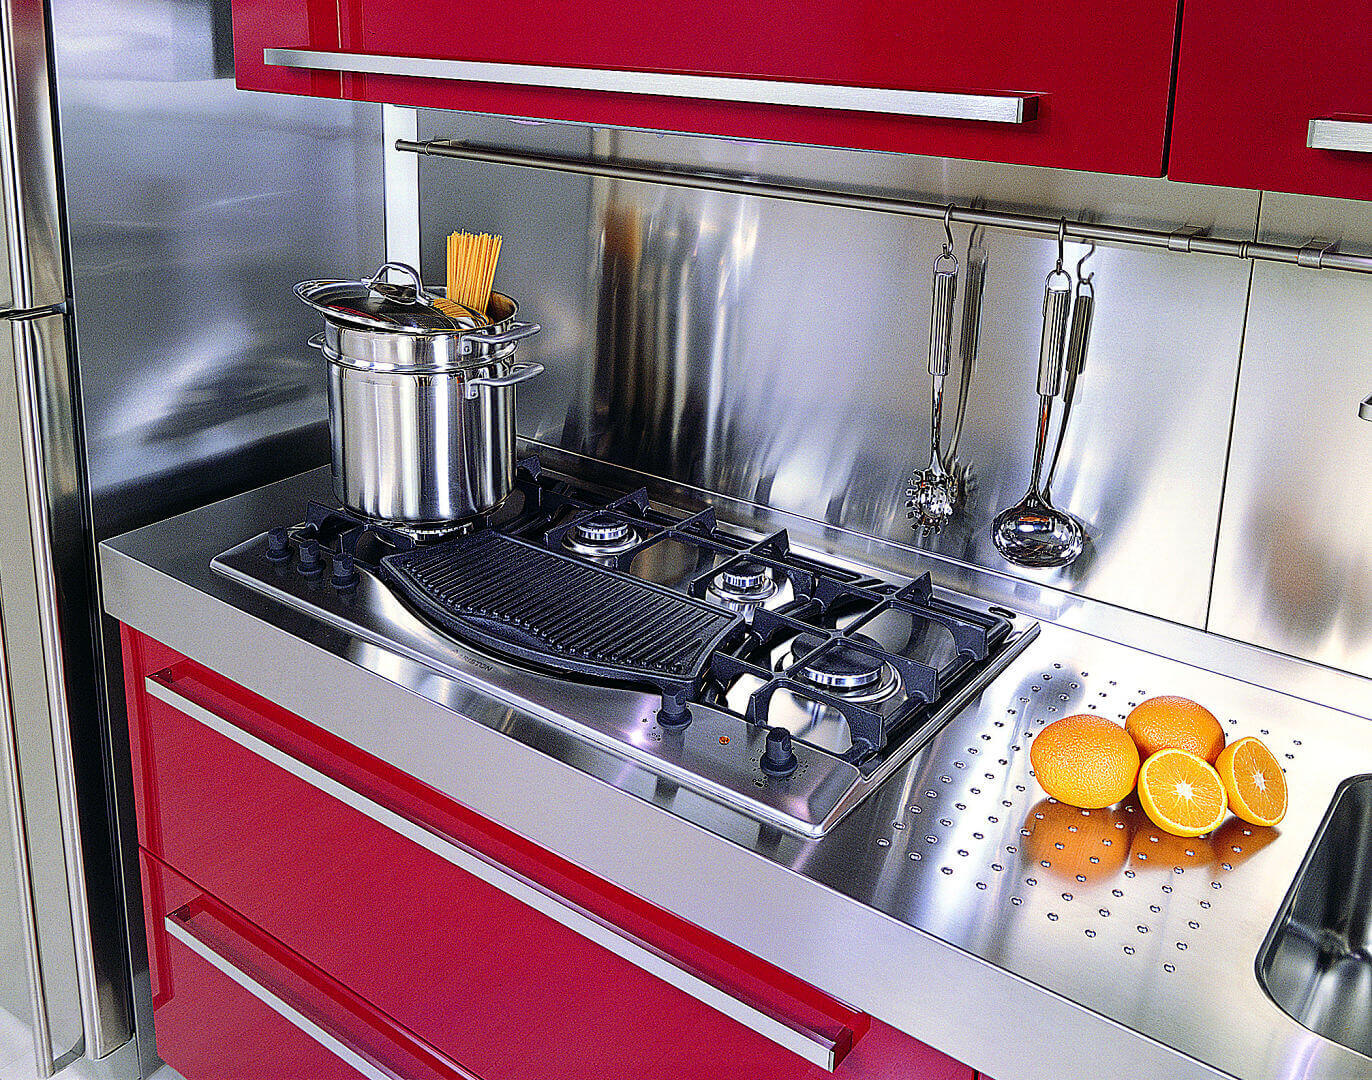 Arca Cucine Italy - Home Kitchen Stainless Steel - Mebel